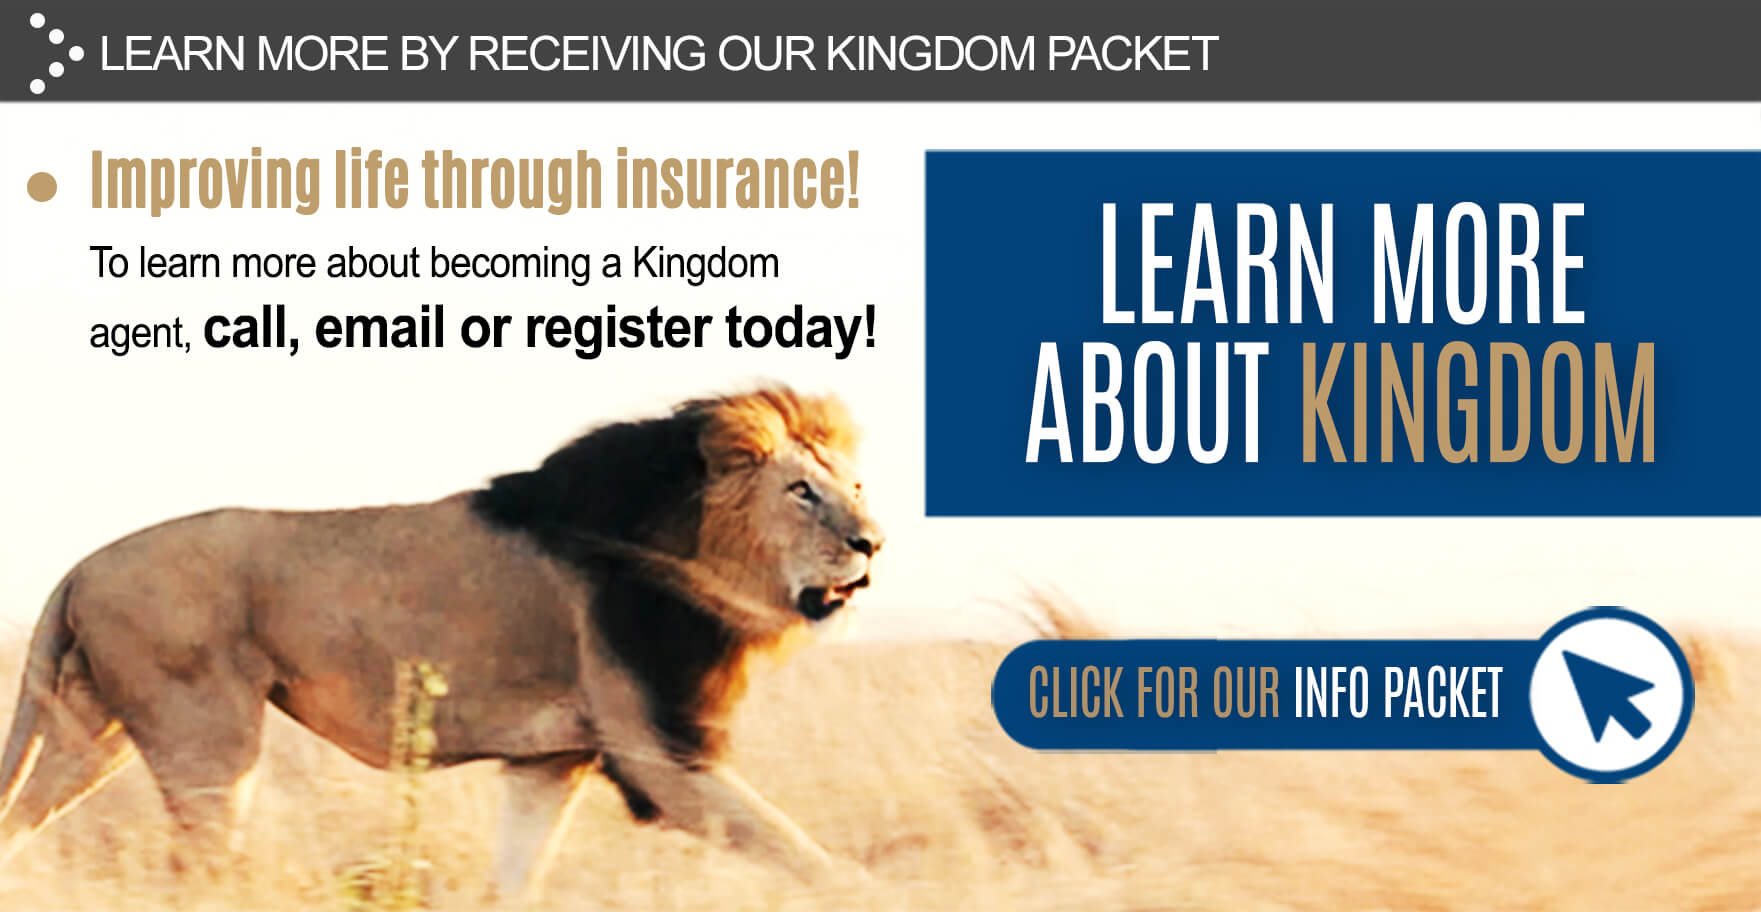 Get the Kingdom information packet!